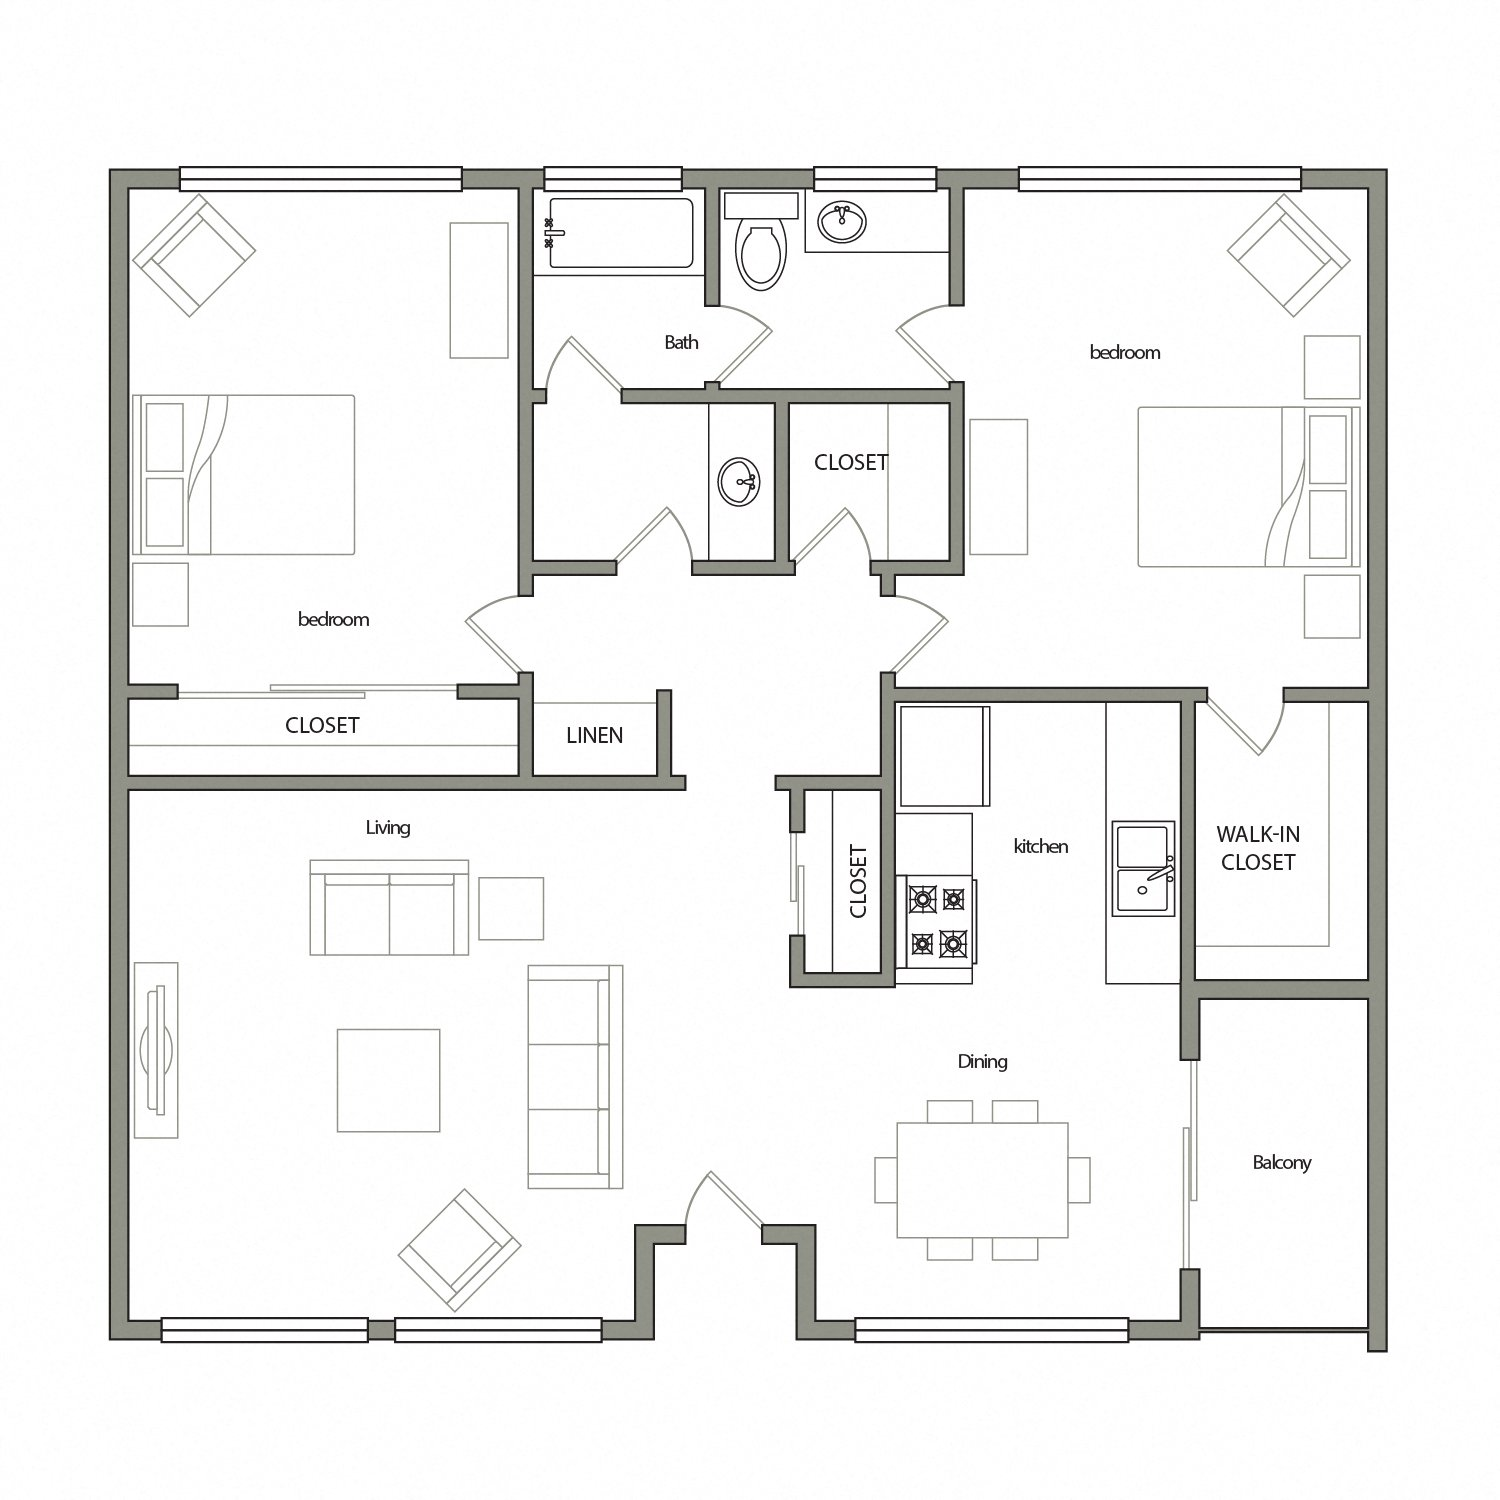 Barcelona floor plan diagram. Two bedrooms, one and a half bathrooms, an open kitchen dining and living area, and a balcony.